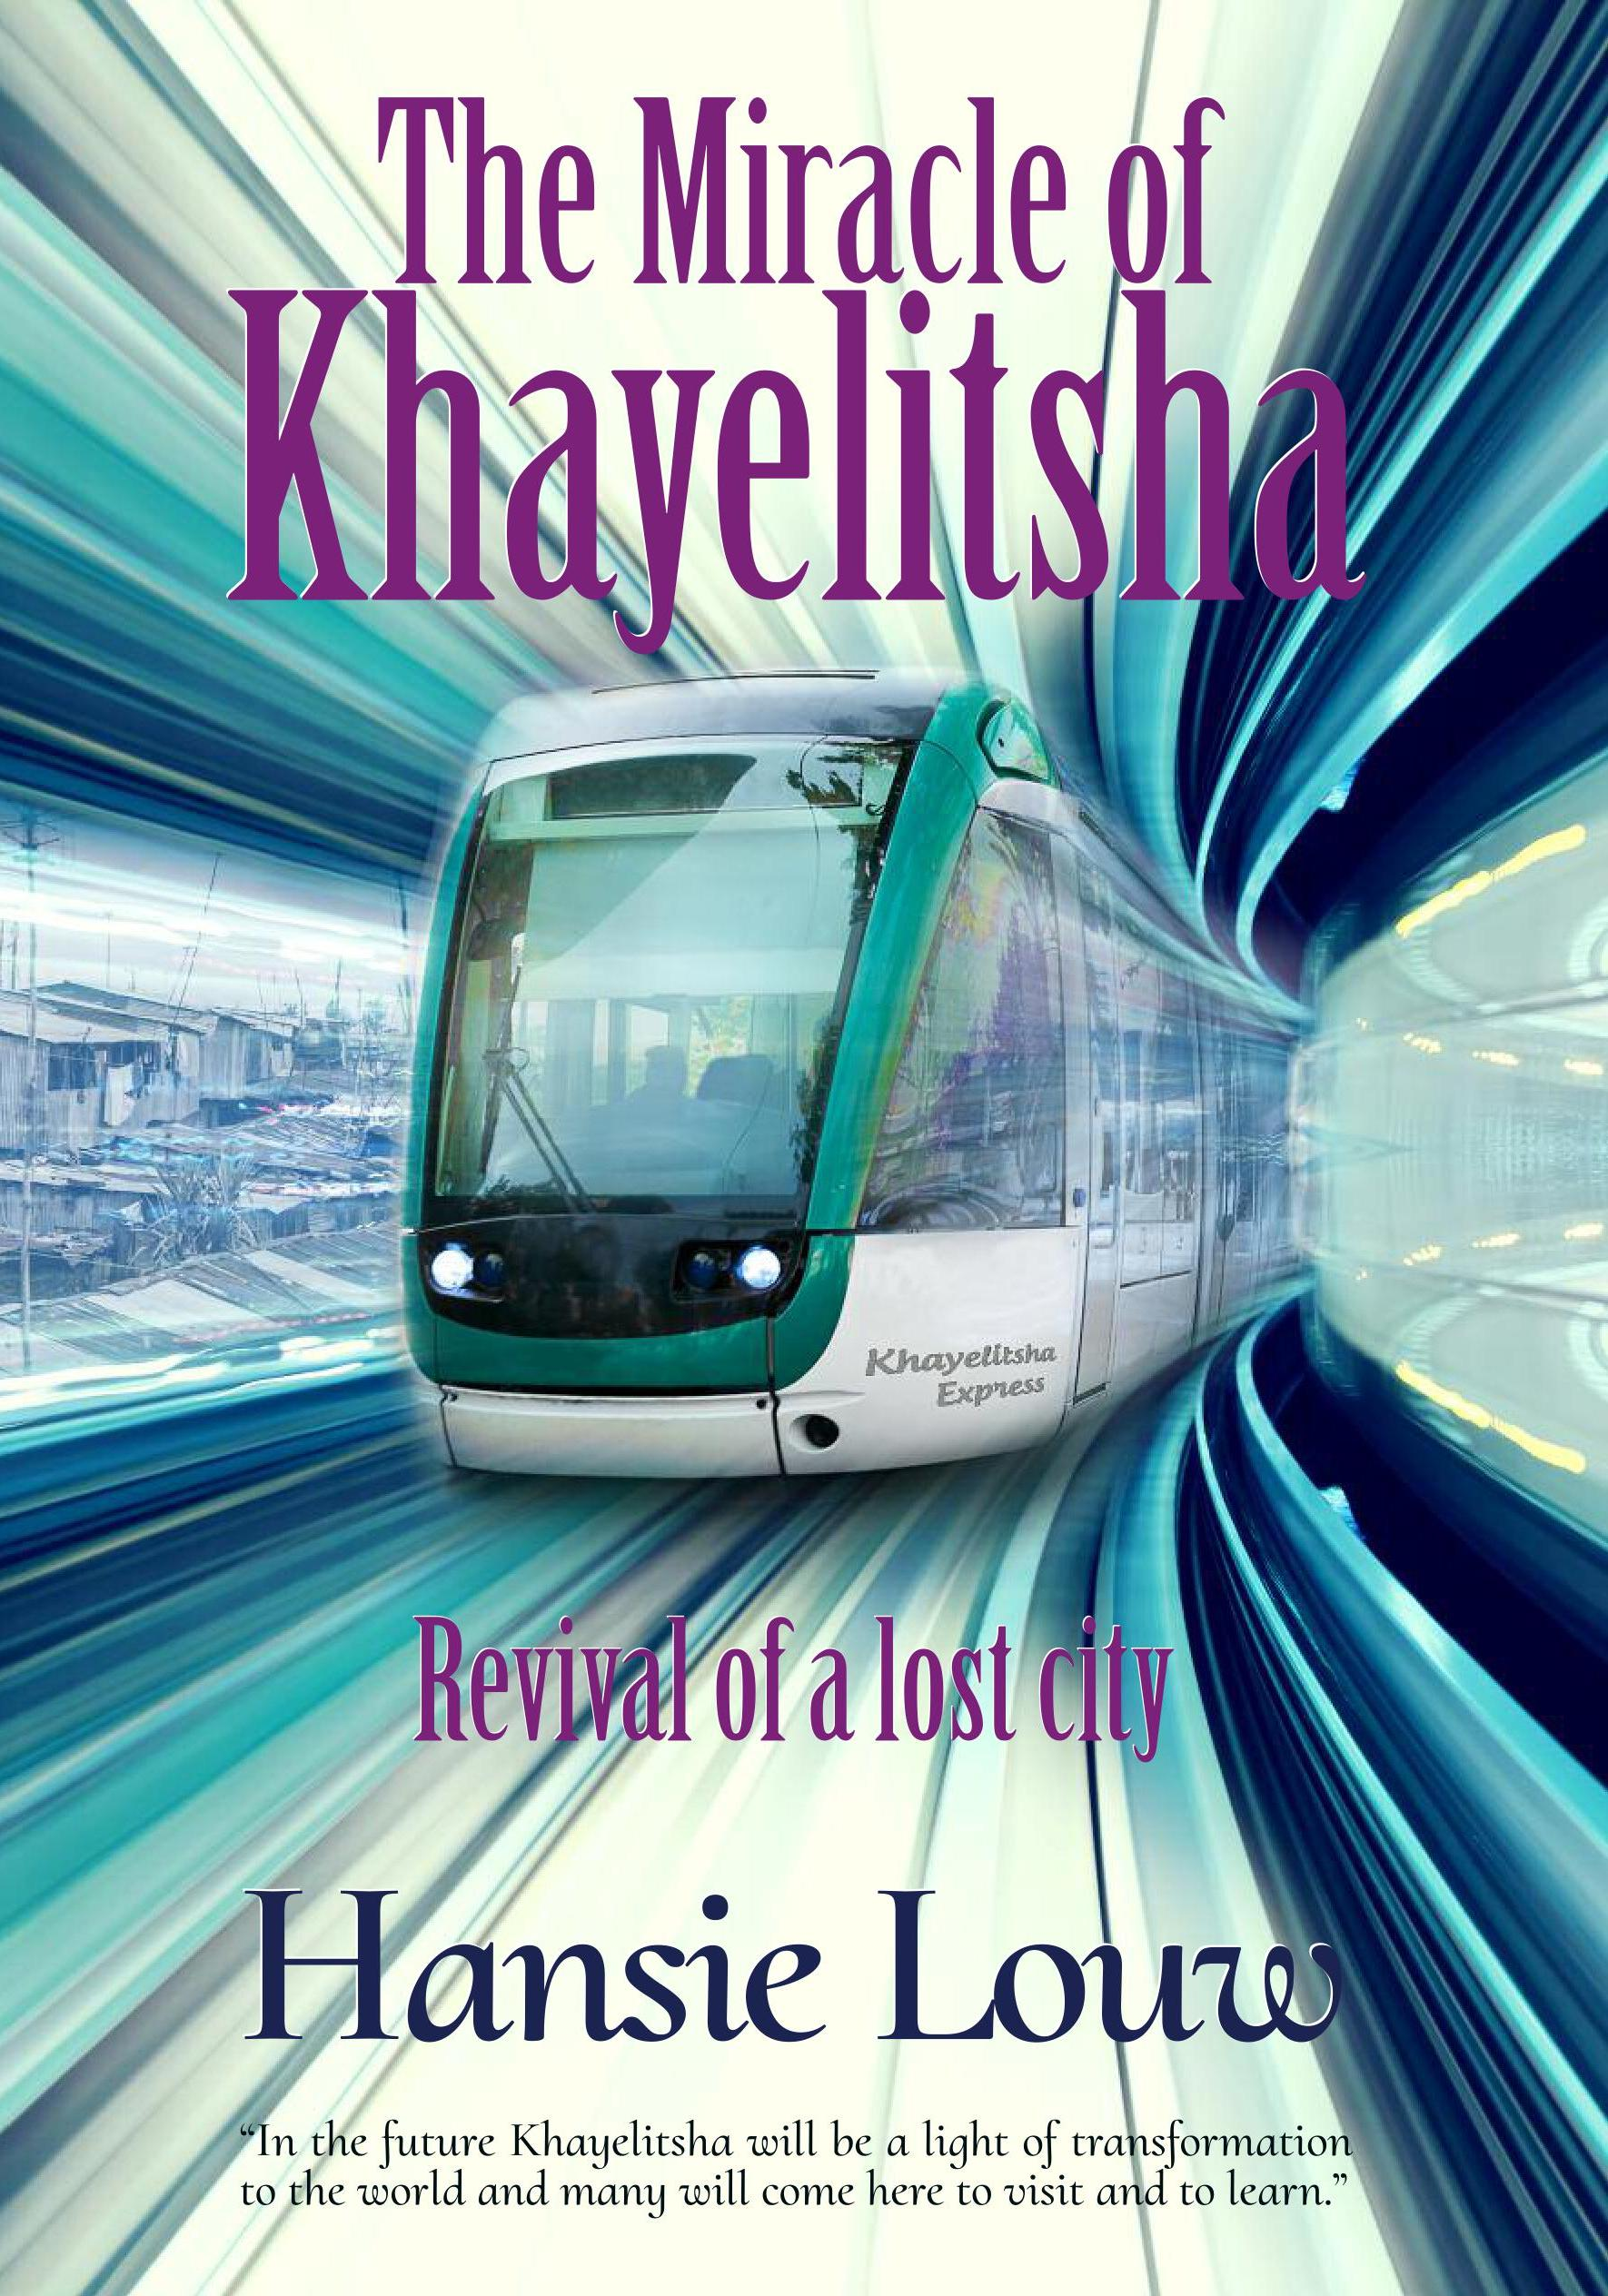 the-miracle-of-khayelitsha--revival-of-a-lost-city--book